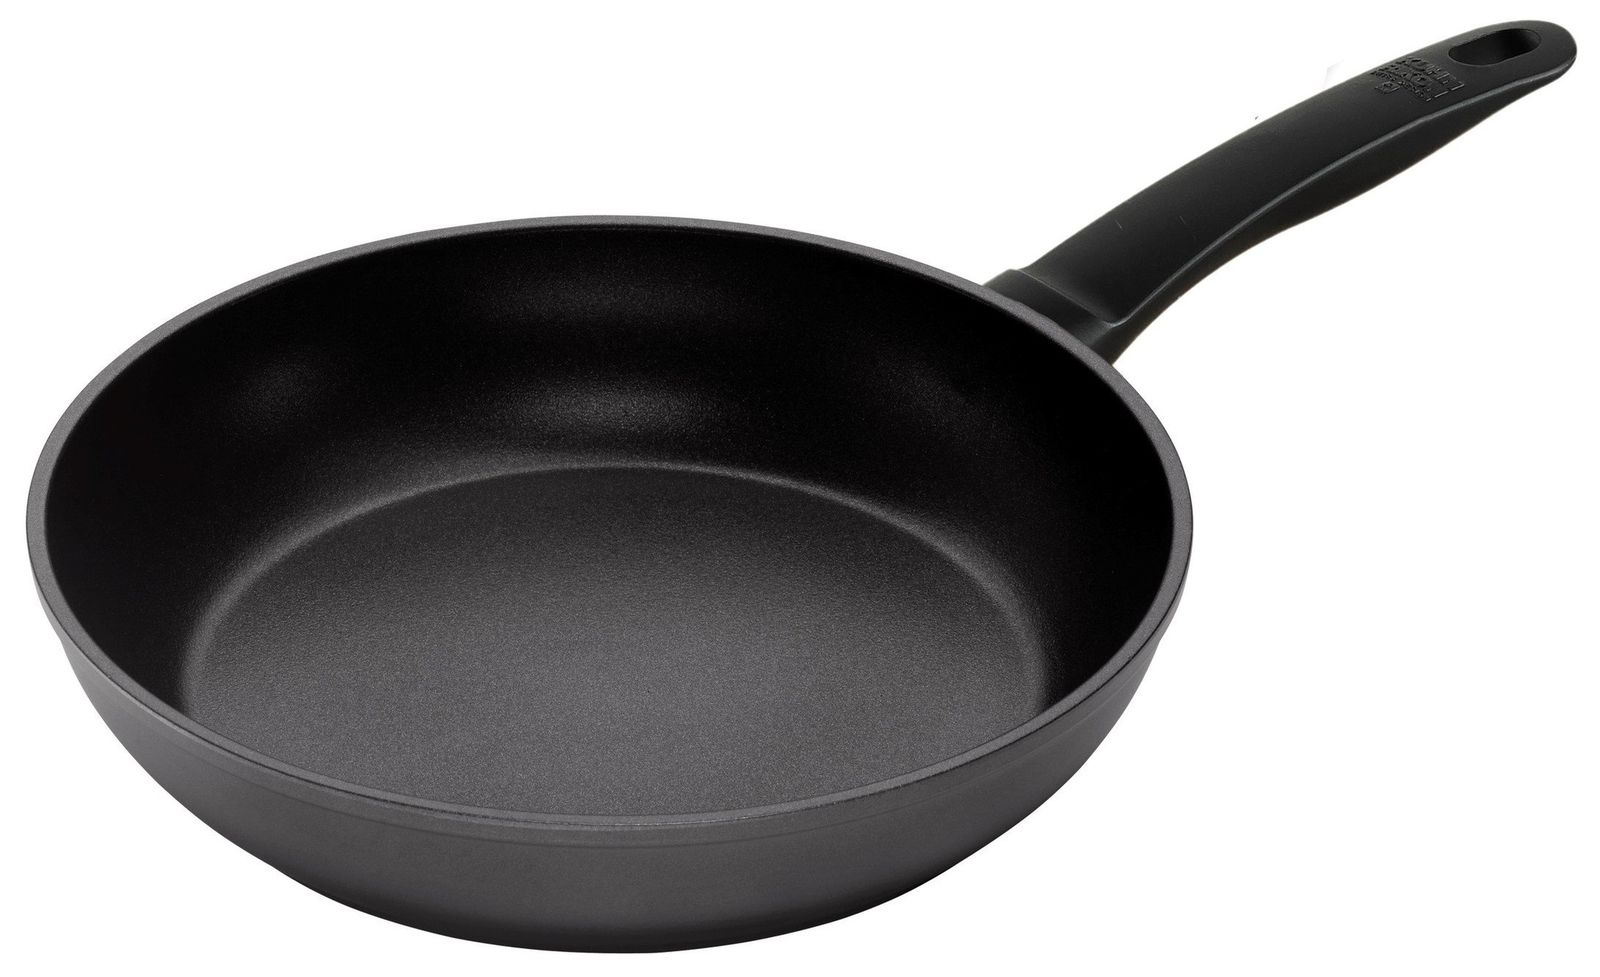 Kuhn Rikon Easy Induction Non Stick Frying Pan 24cm